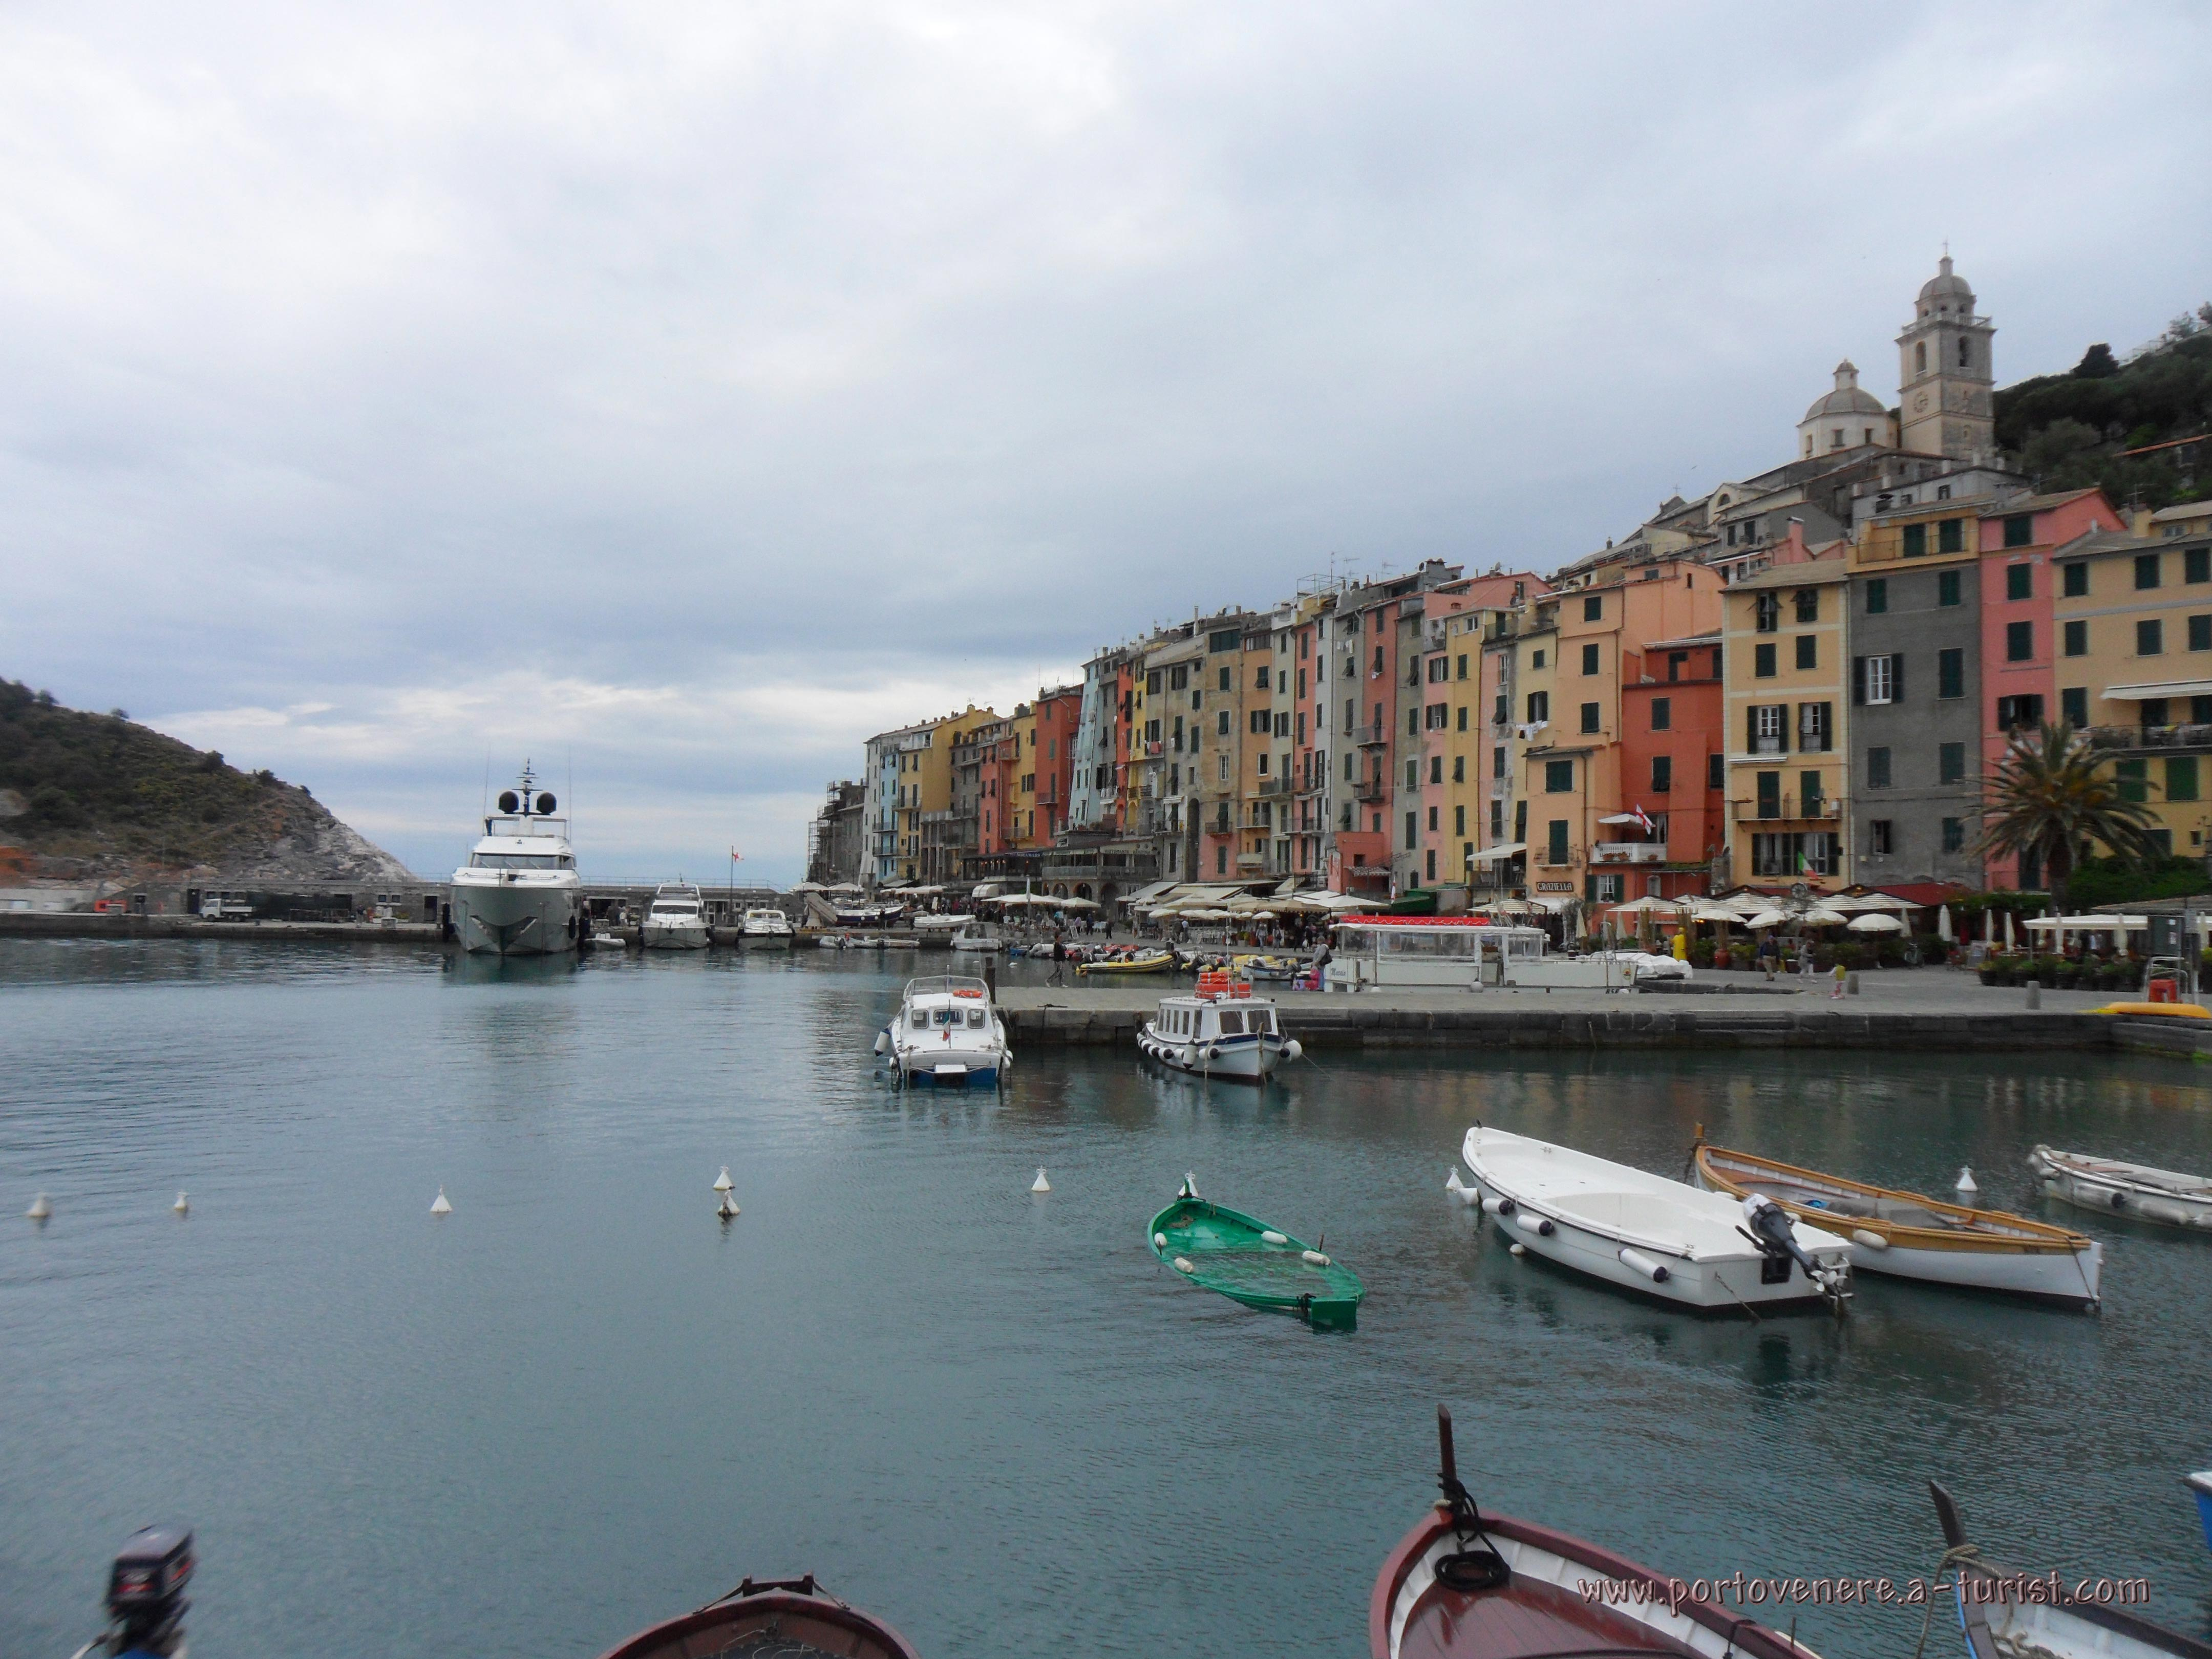 Portovenere - View from the boat<br>4320x3240, 1.18 MB